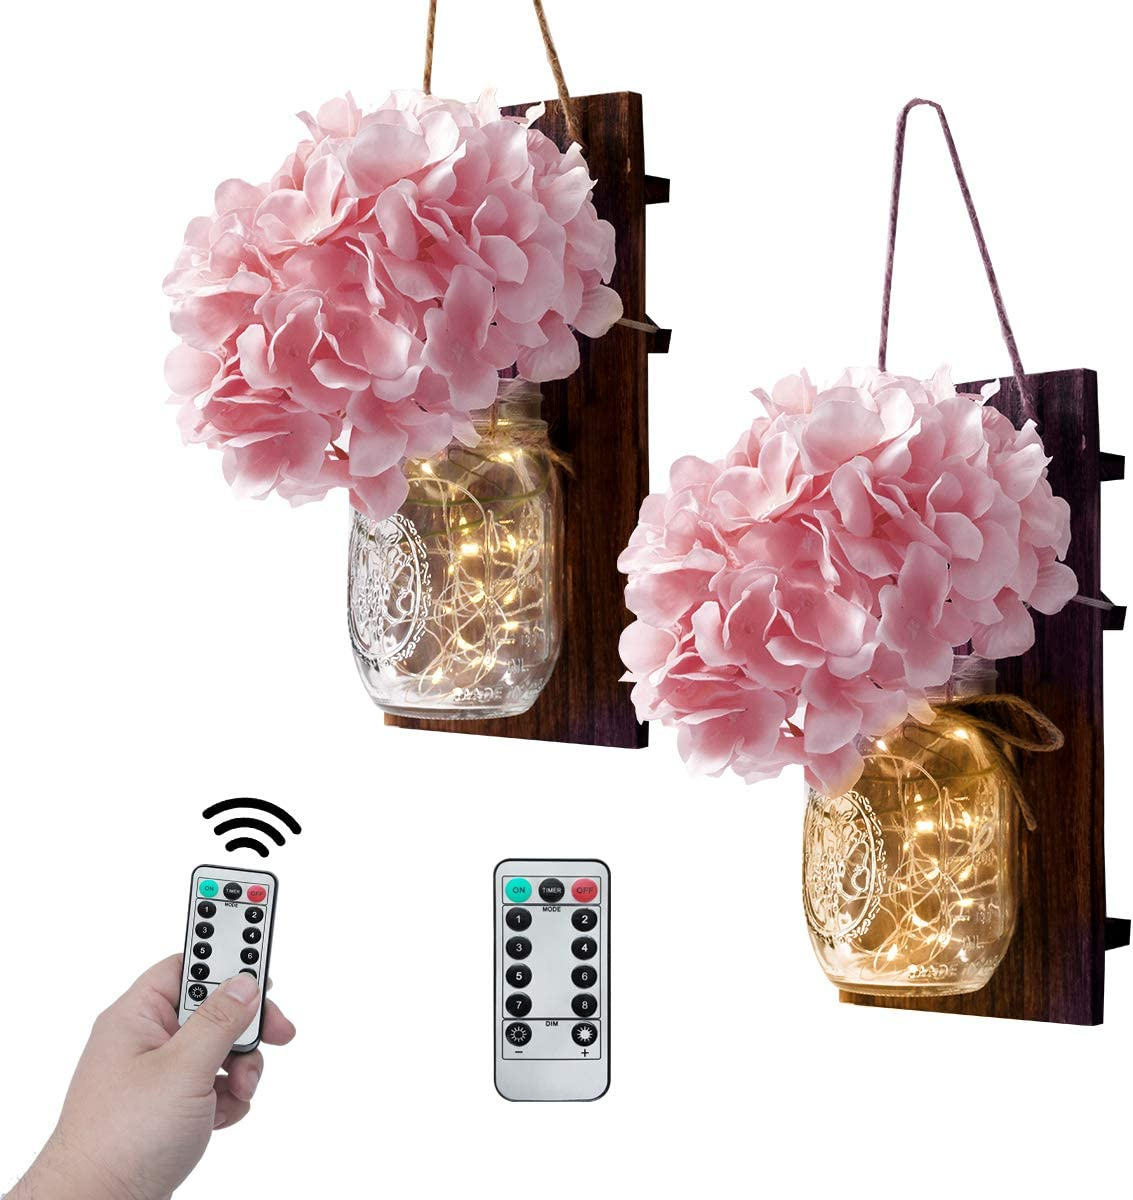 VIEFIN Mason Jar Sconces Wall Decor,Rustic Wall Sconces Home Decor with Remote Control, Silk Hydrangea,Brown Wood Board and LED Strip with 20 Fairy Lights(2 Pack, Pink)